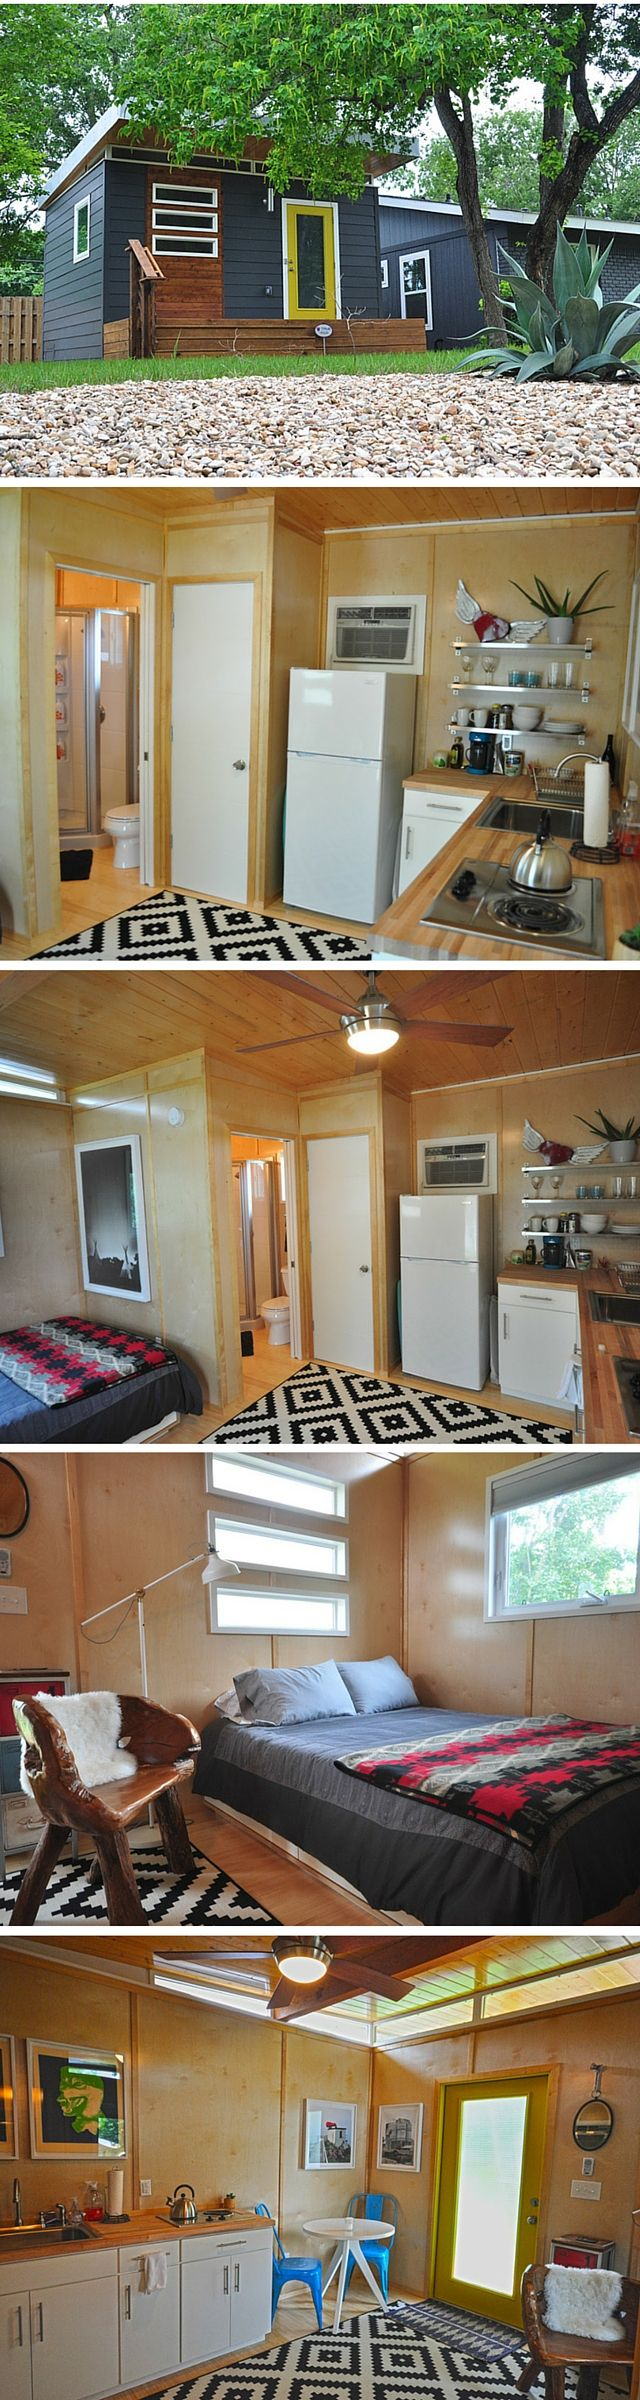 A modern prefab cabin kit from Kanga Rooms. Just 224 sq ft!